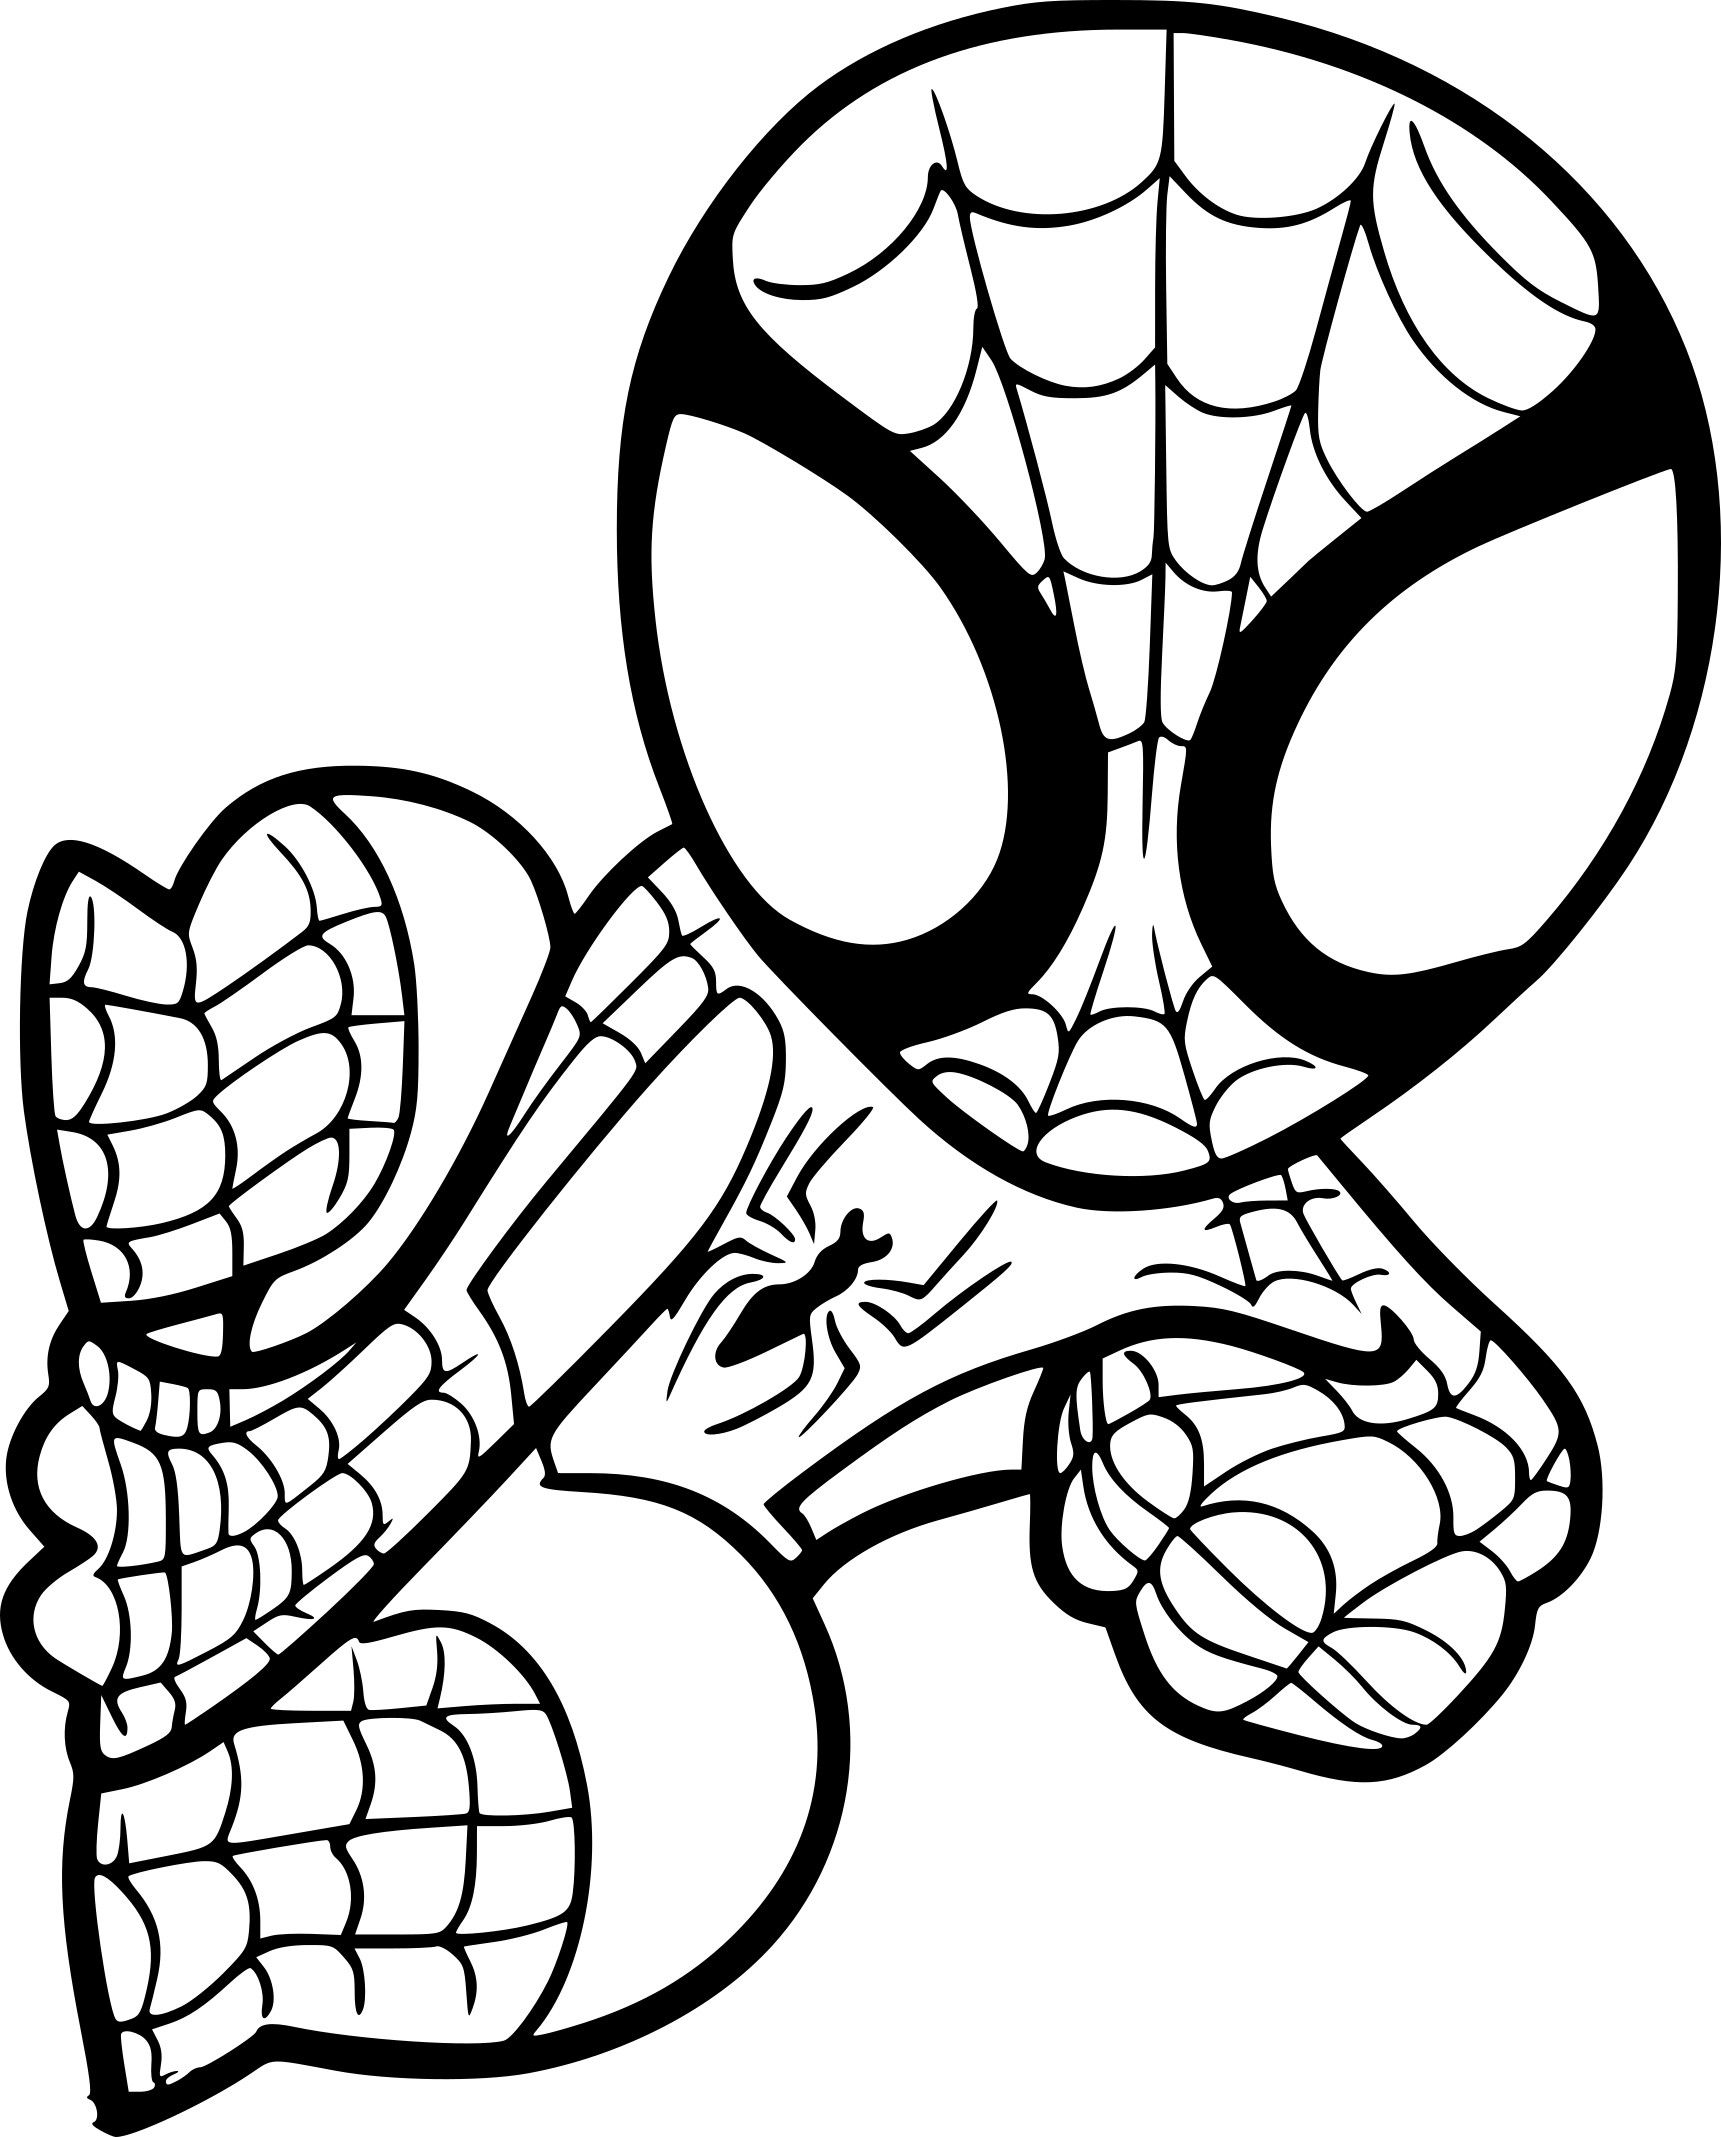 Coloriage Spiderman Facile A Imprimer Sur Coloriages Dedans Dessin Spiderman A Imprimer Gratuit Dessin Spiderman Coloriage Spiderman Coloriage Disney